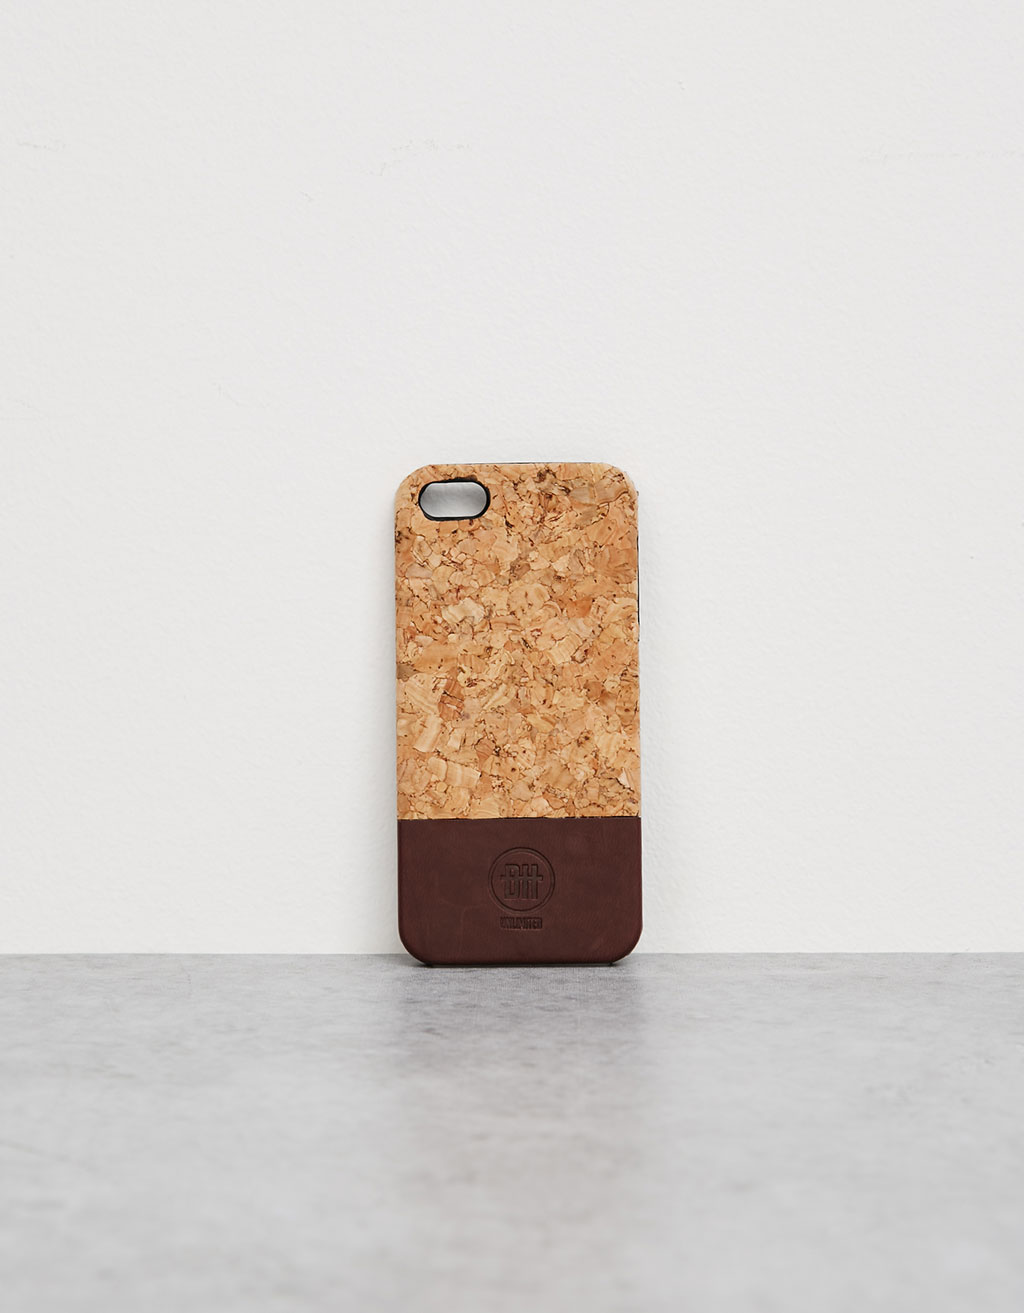 Cork iPhone 5/5s case